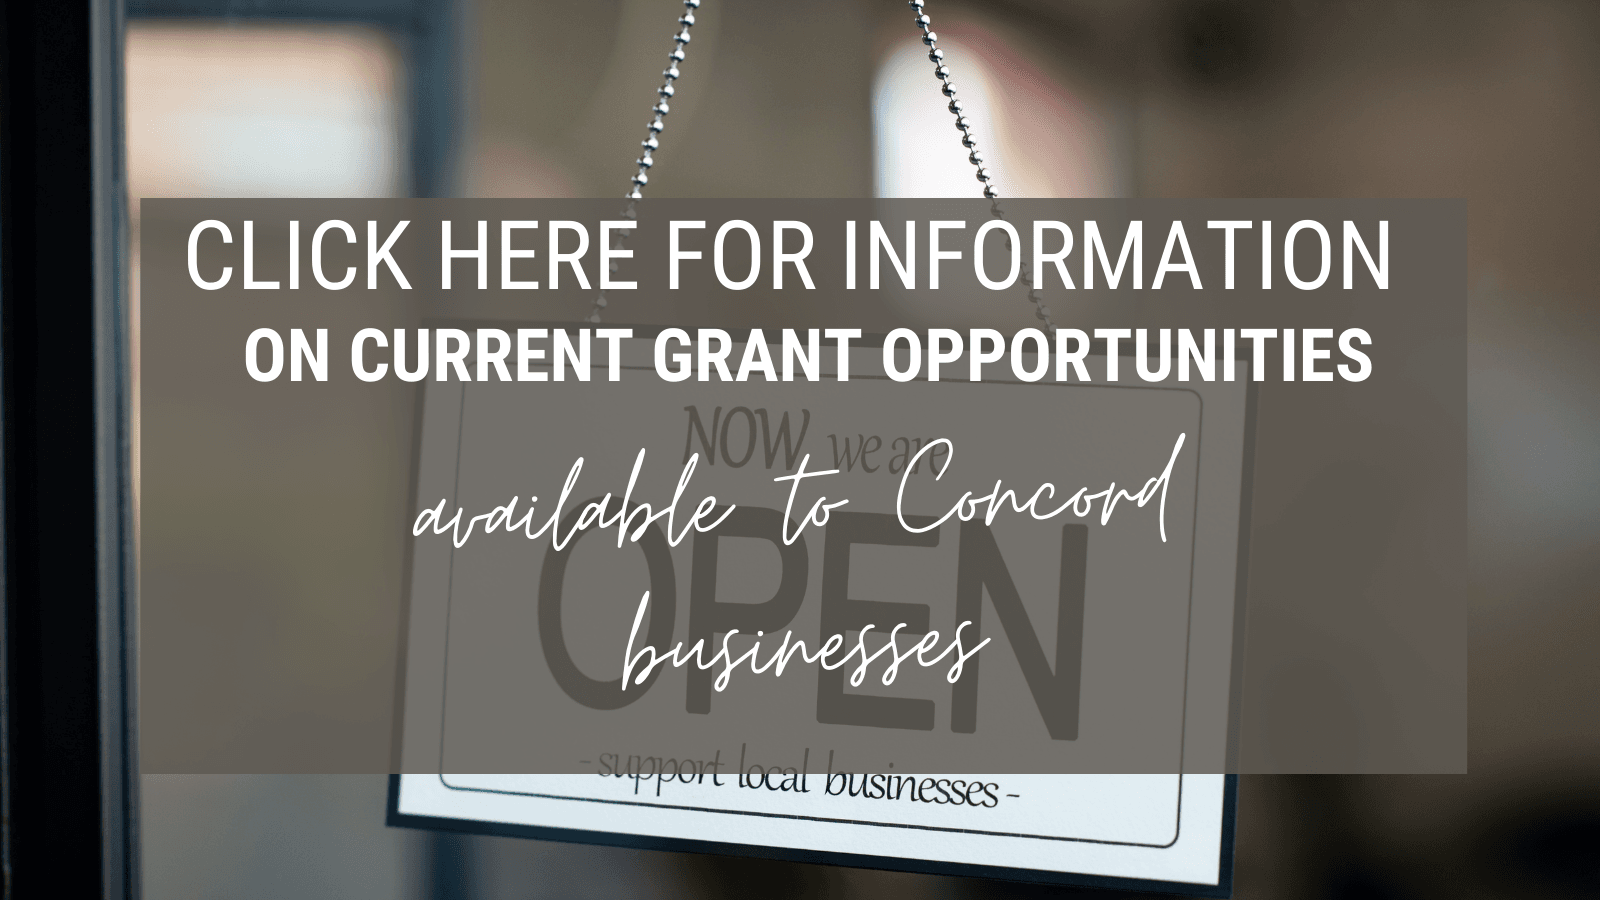 click here for information on grant opportunities